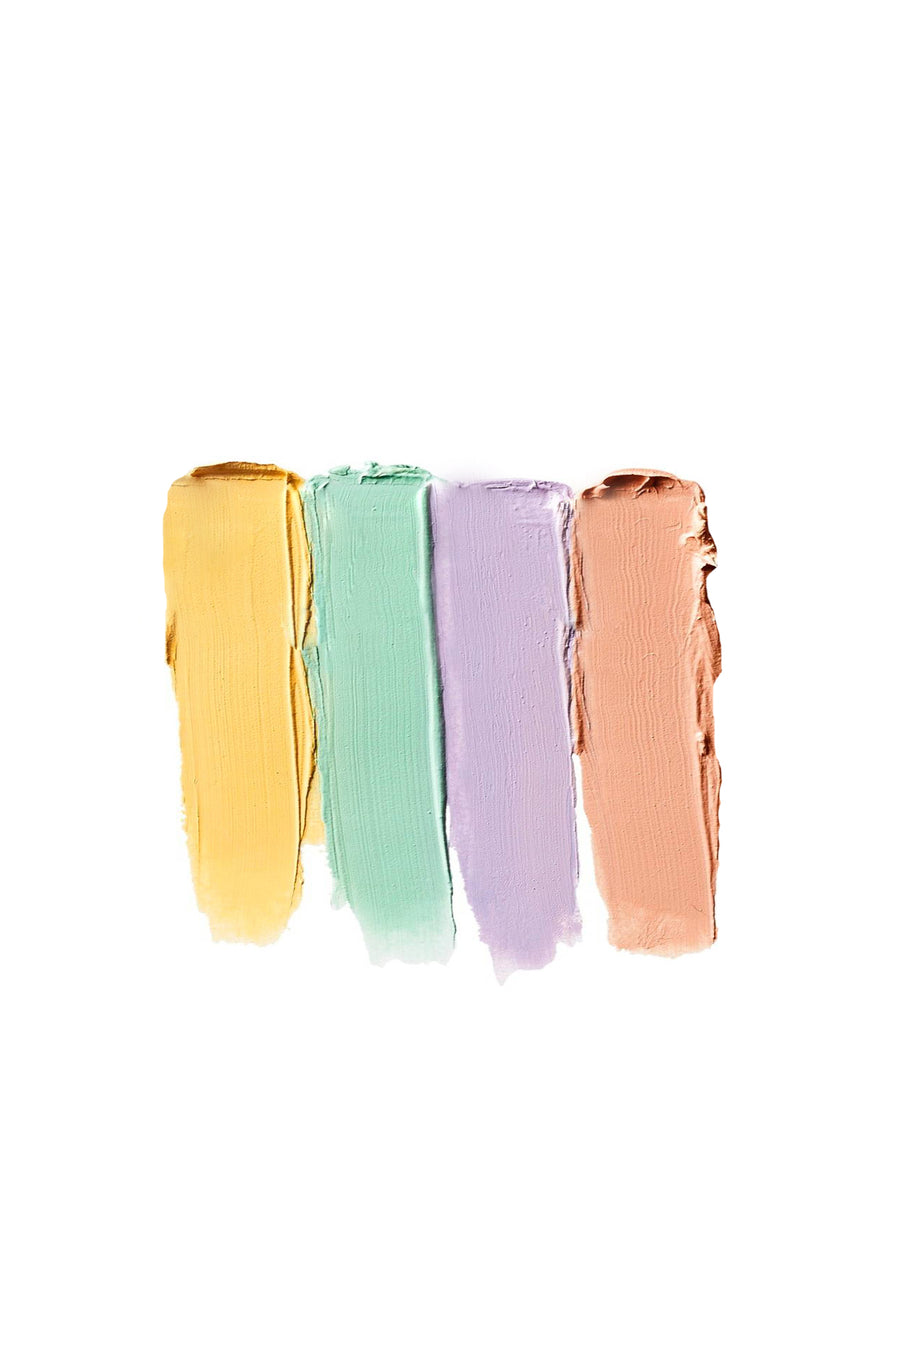 Color Correcting Set - Blend Mineral Cosmetics